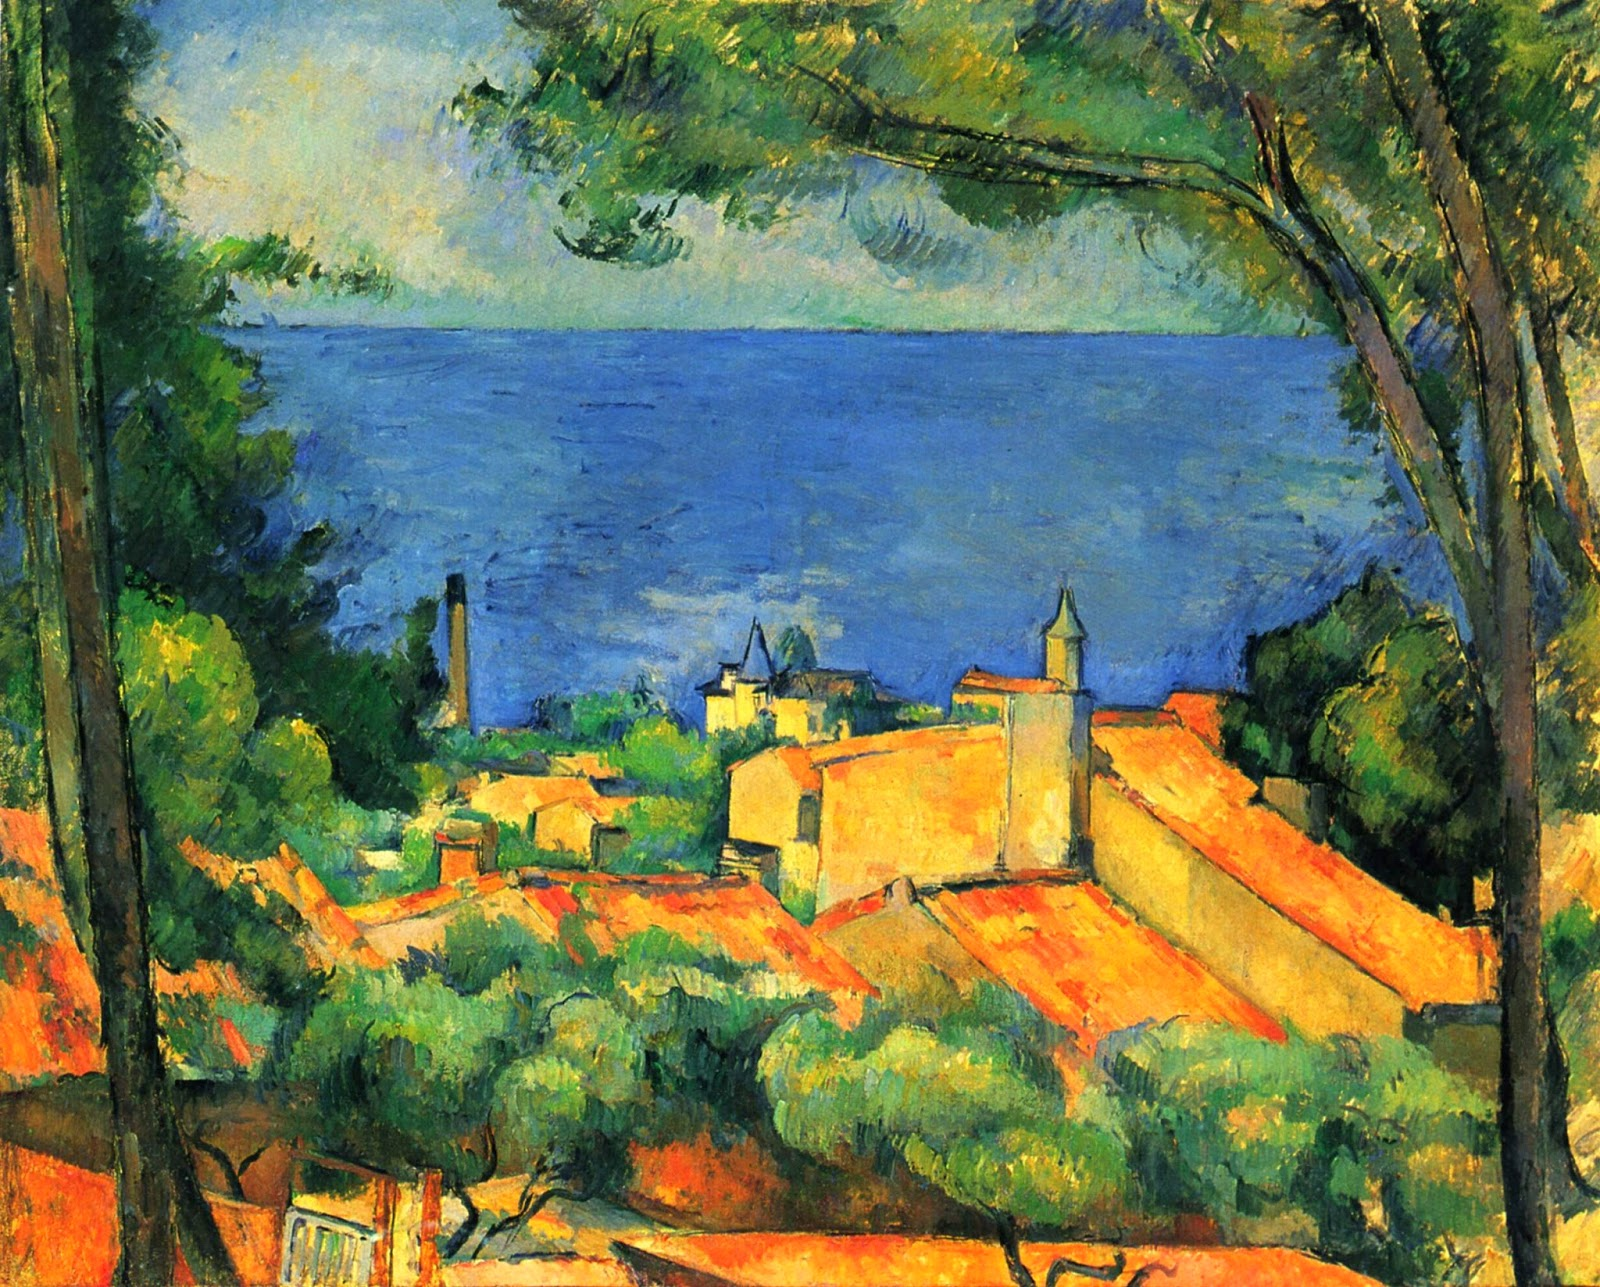 Cezanne landscape picture inspired Hemingway's writing